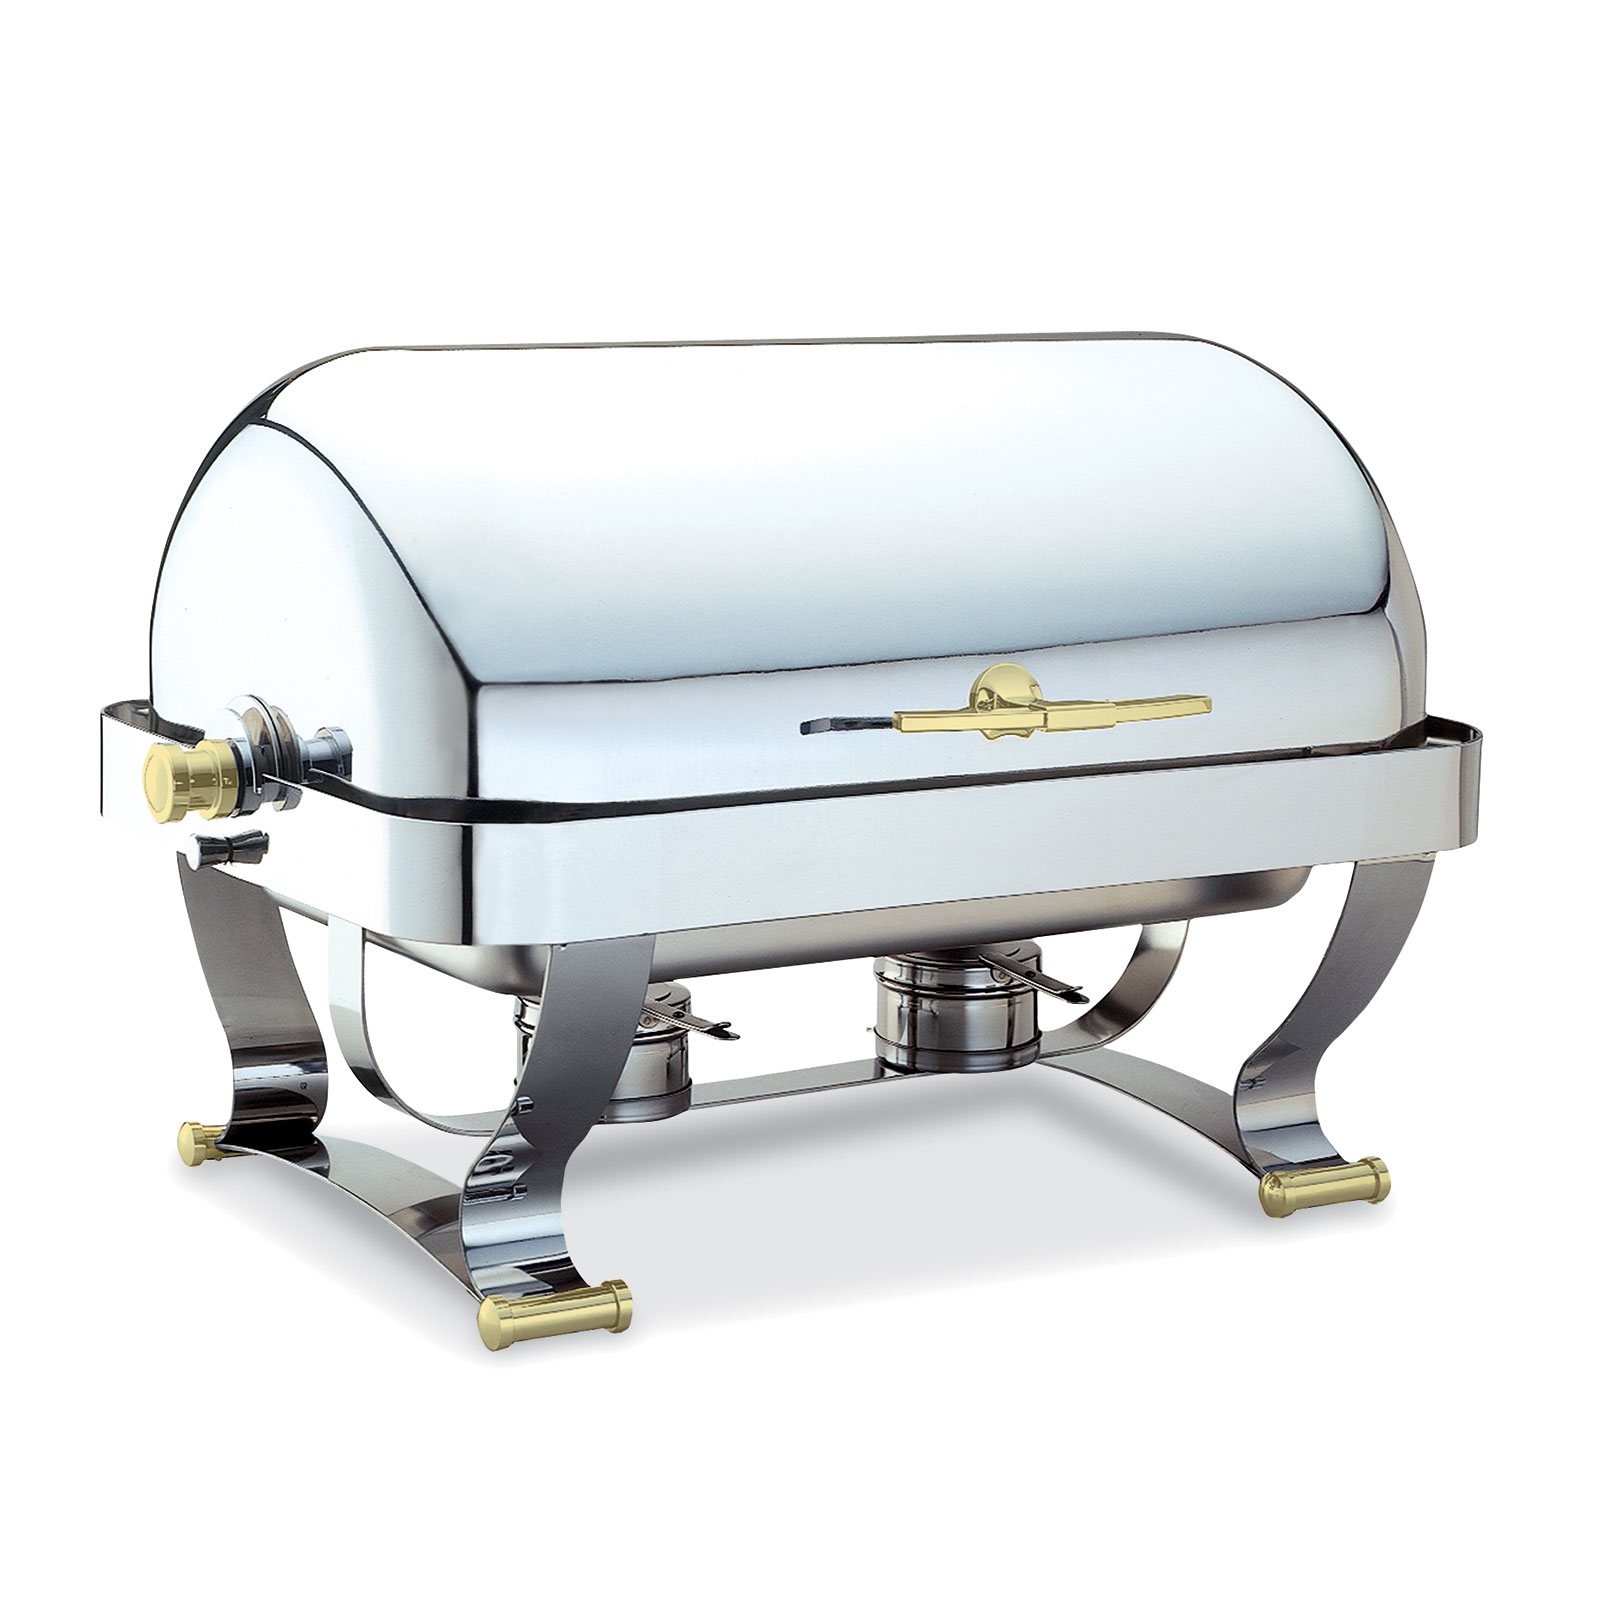 Walco Stainless 54120G chafing dish